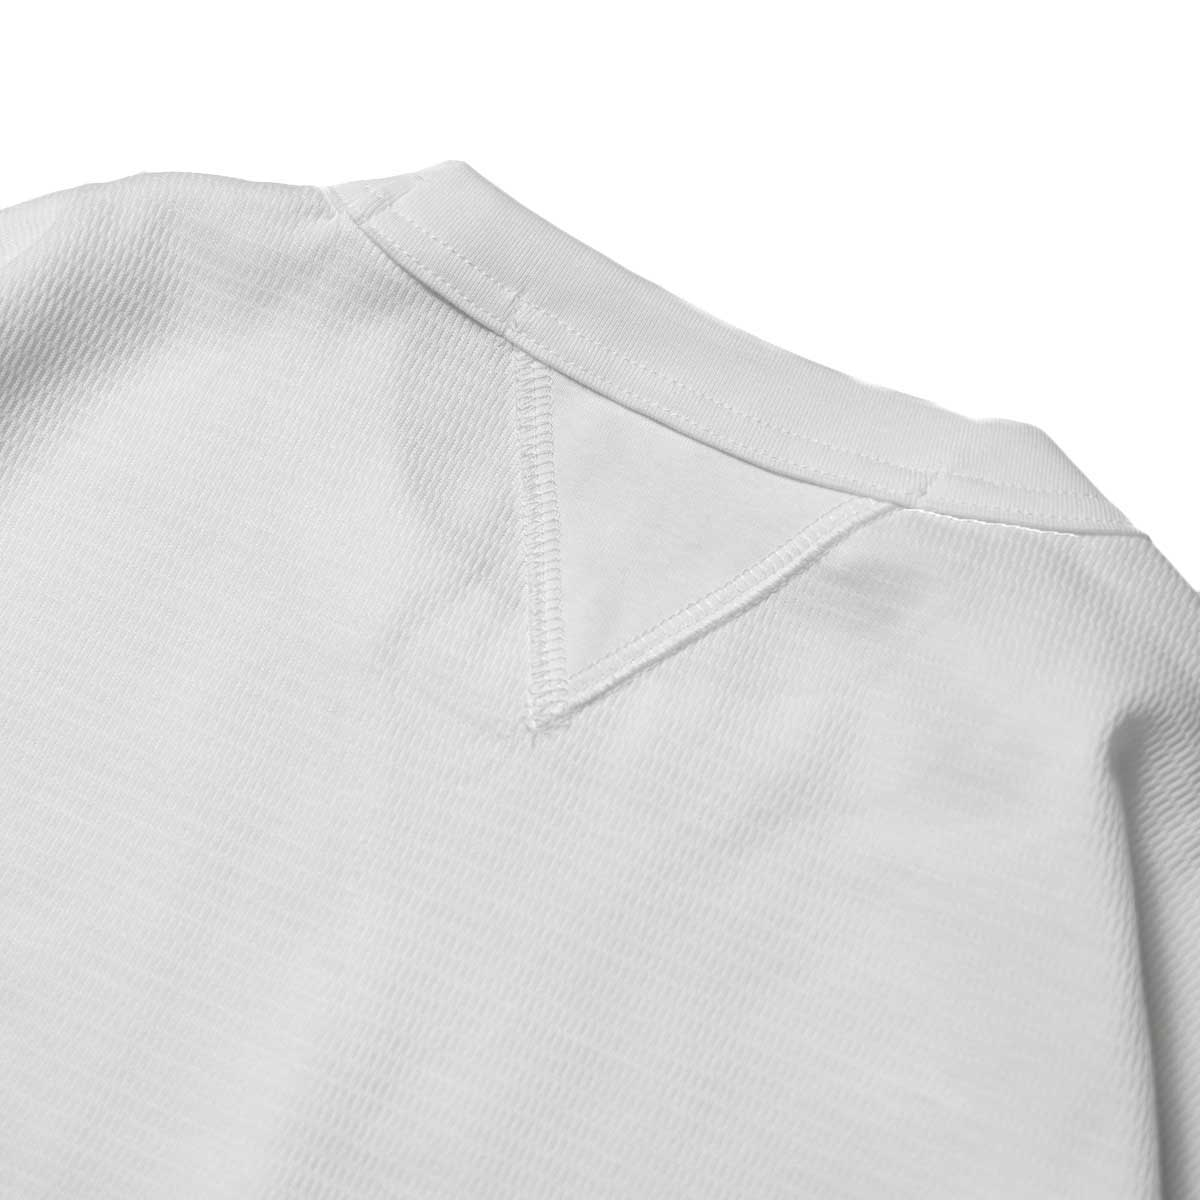 FUTURE PRIMITIVE / FP THERMAL V T-SHIRT (White)背面ガセット